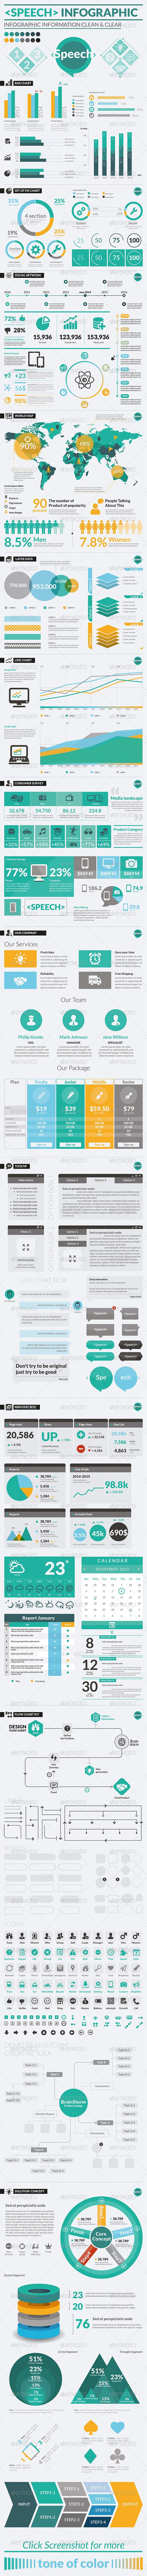 Speech Infographic  #modern #pie #presentation • Available here → http://graphicriver.net/item/speech-infographic/6755476?s_rank=78&ref=pxcr